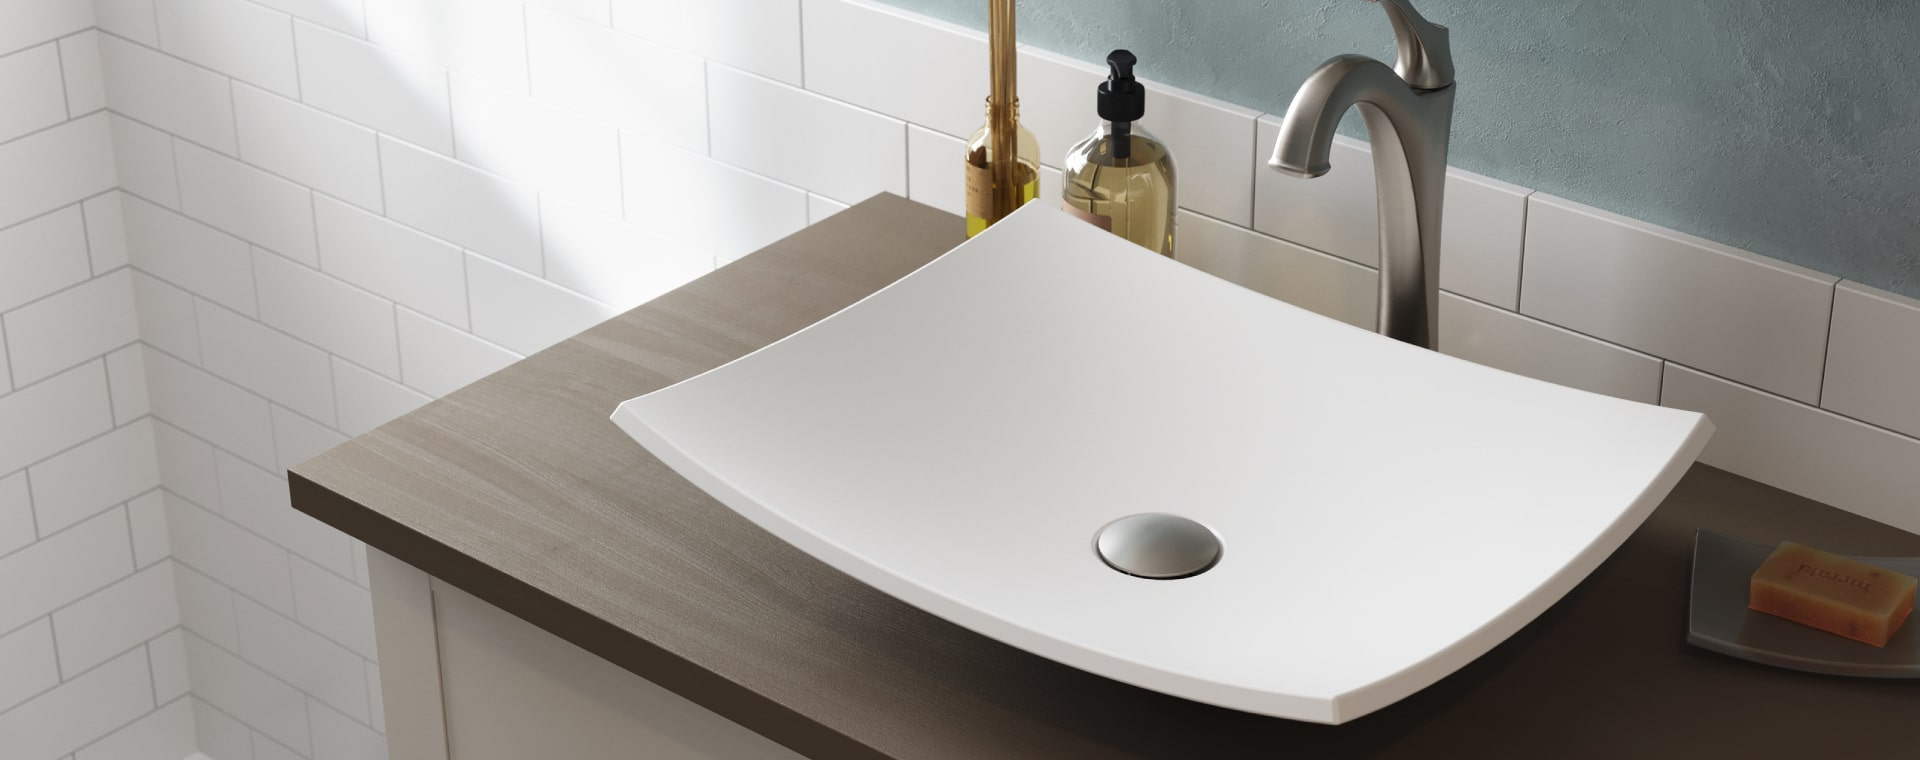 Read more about the article Choosing the Stylish Vessel Sinks for Modern Bathrooms